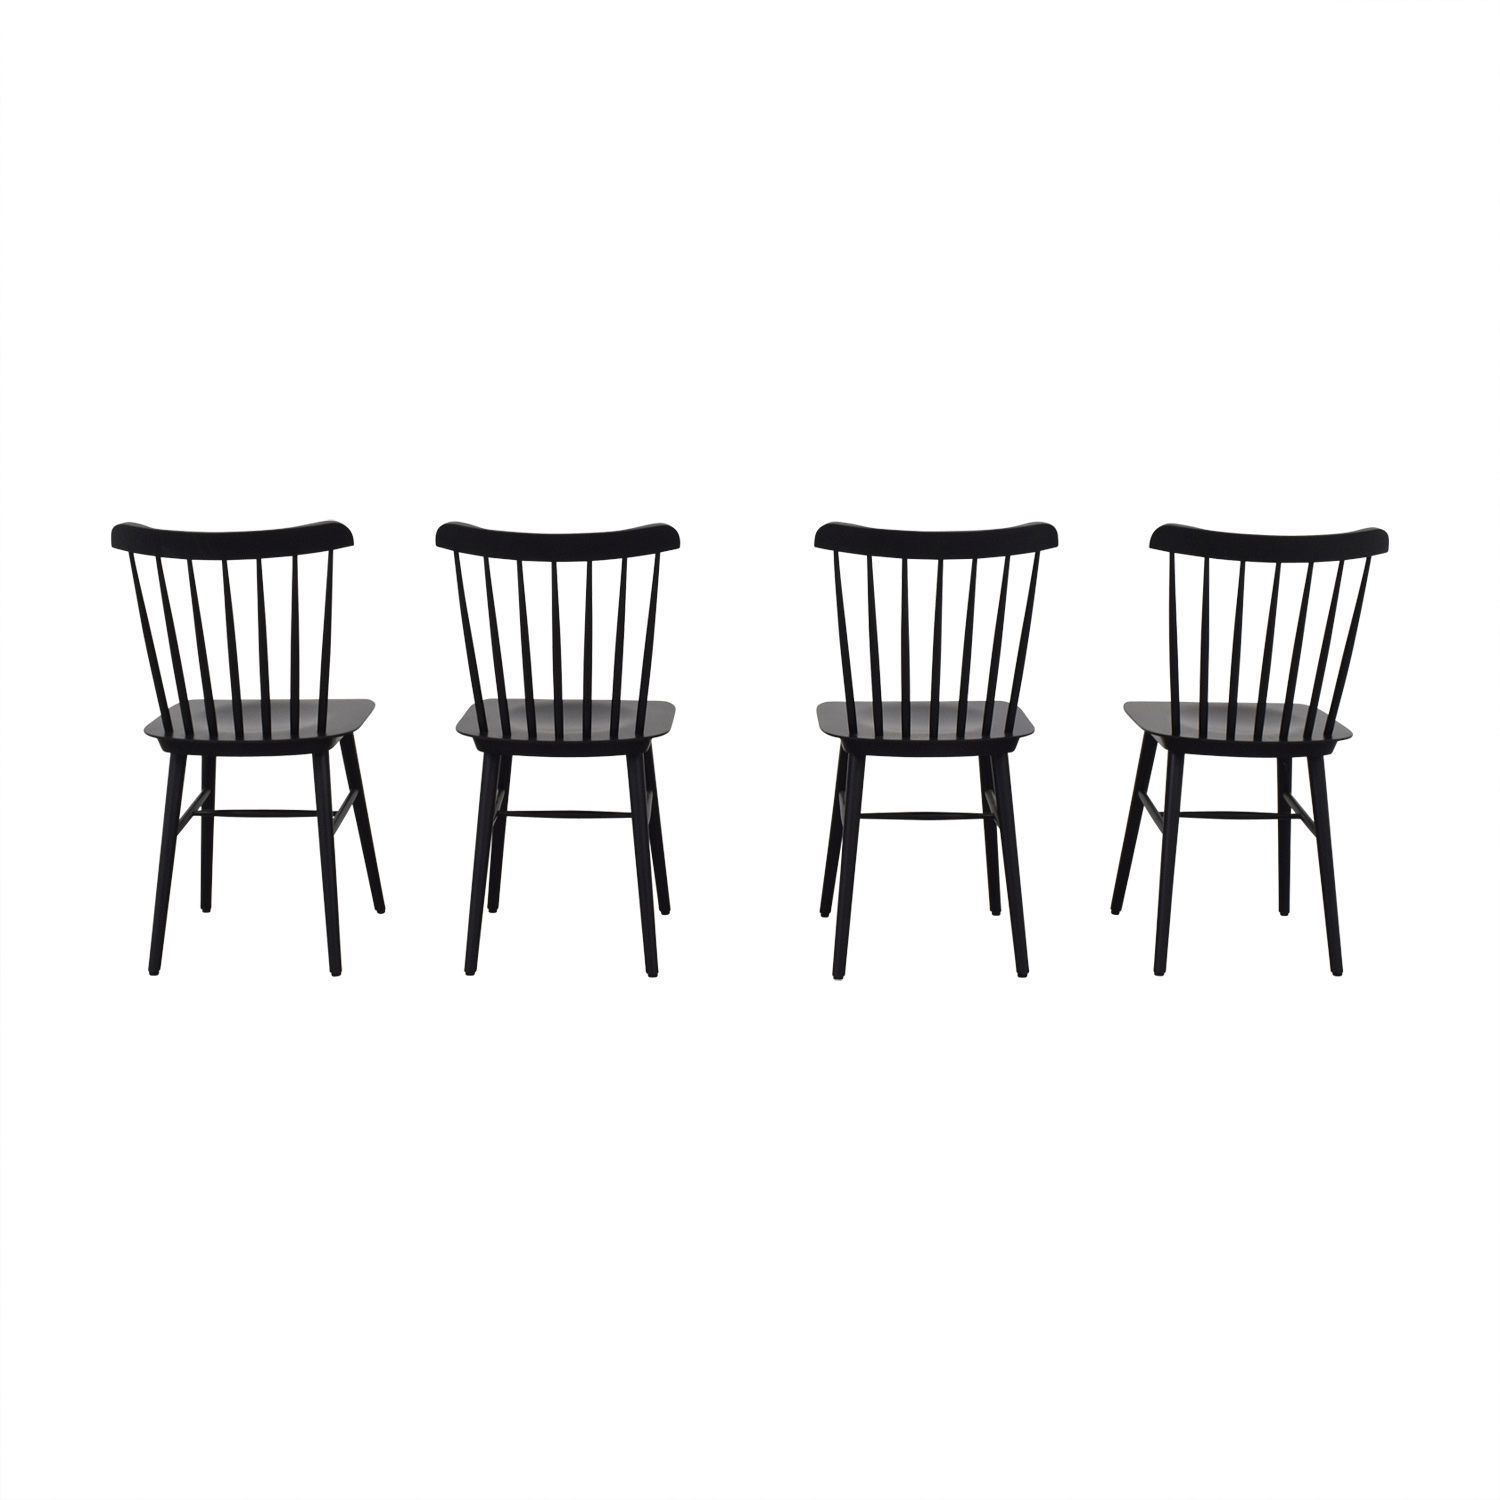 Salt Chair Dining Chairs Used Dining Chairs For Sale